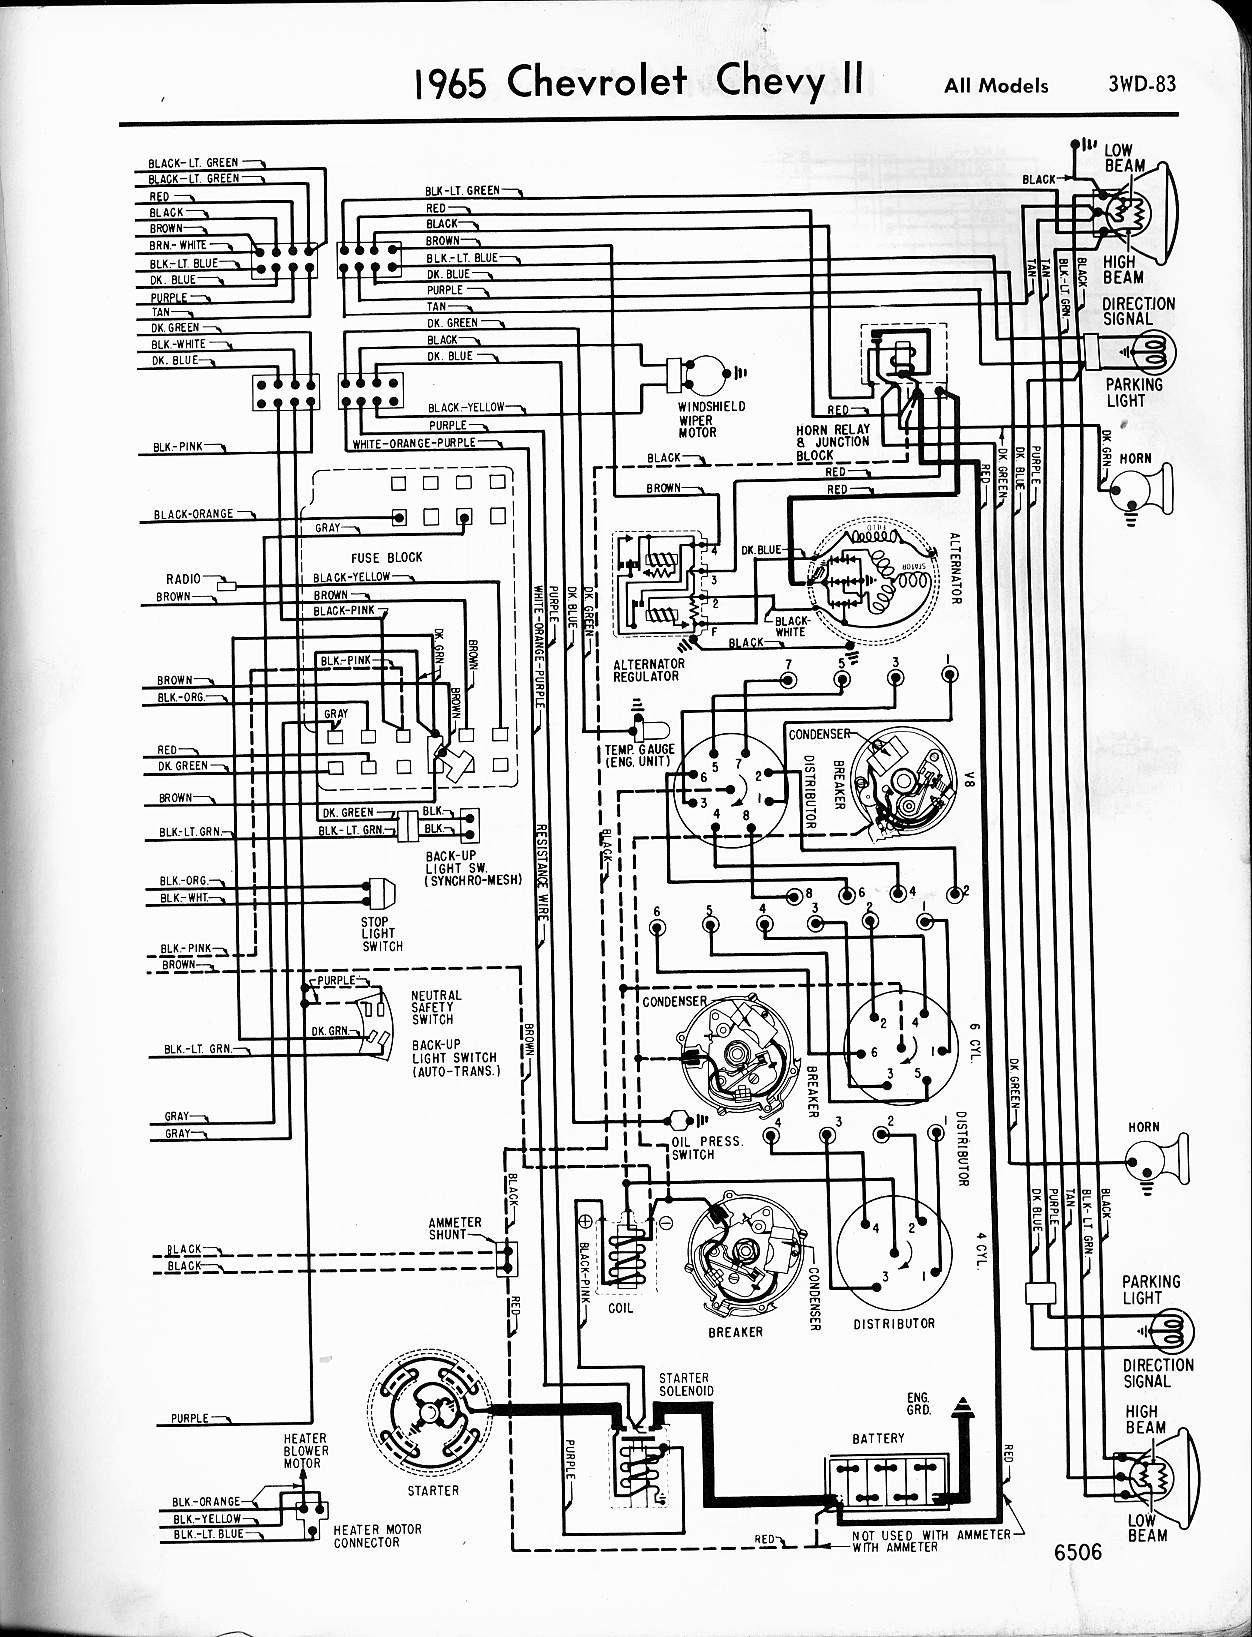 2008 Chevy Impala Wiring Diagram 1966 Chevrolet Impala Wiring Diagram Trusted Wiring Diagrams • Of 2008 Chevy Impala Wiring Diagram Oxygen Sensor 2006 Impala Wiring Diagram Wiring Wiring Diagrams